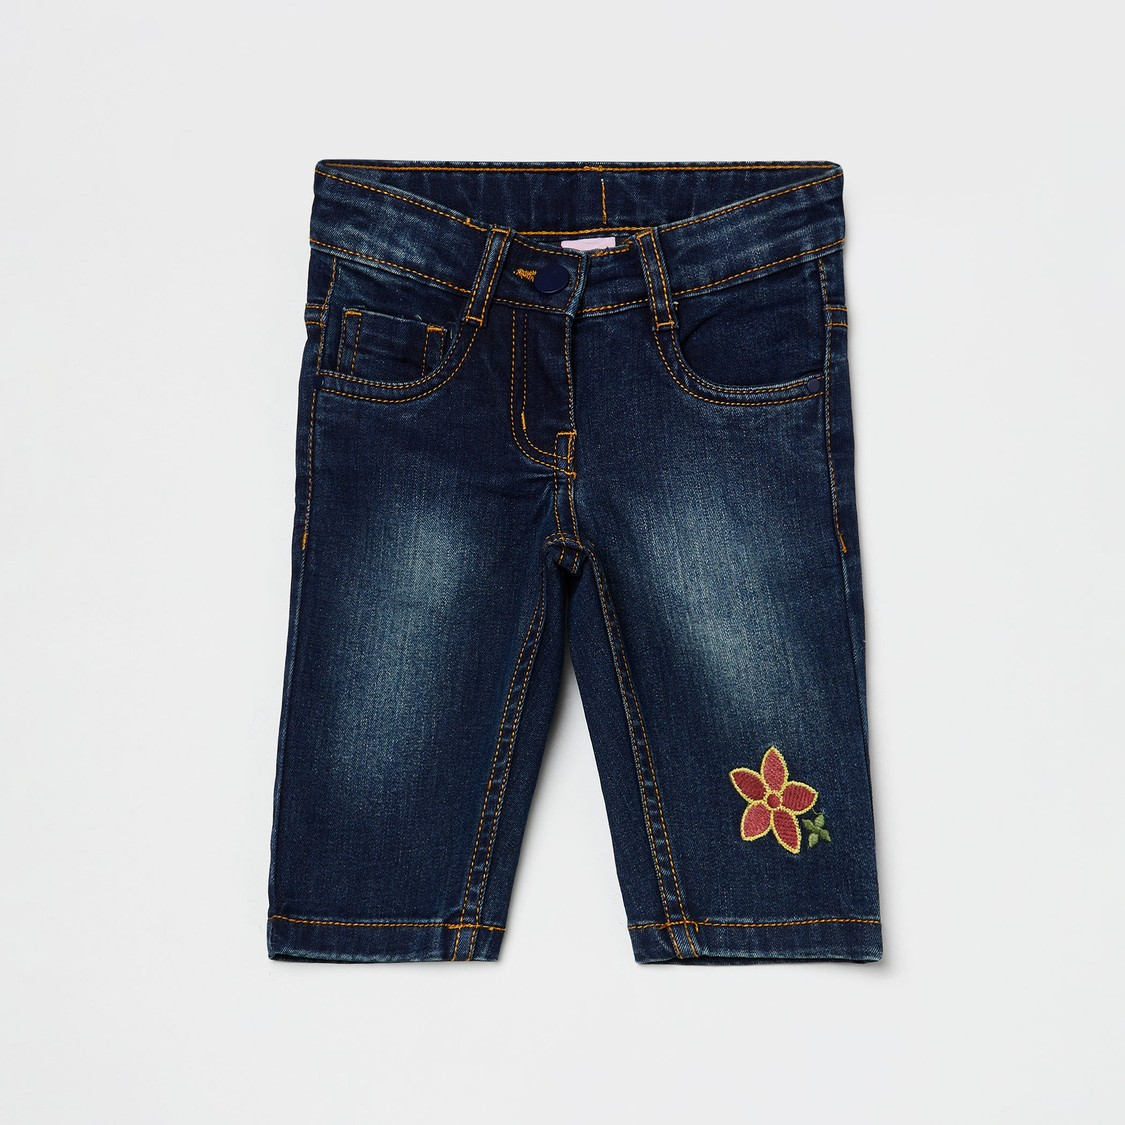 MAX Stonewashed Slim Fit Jeans with Embroidery